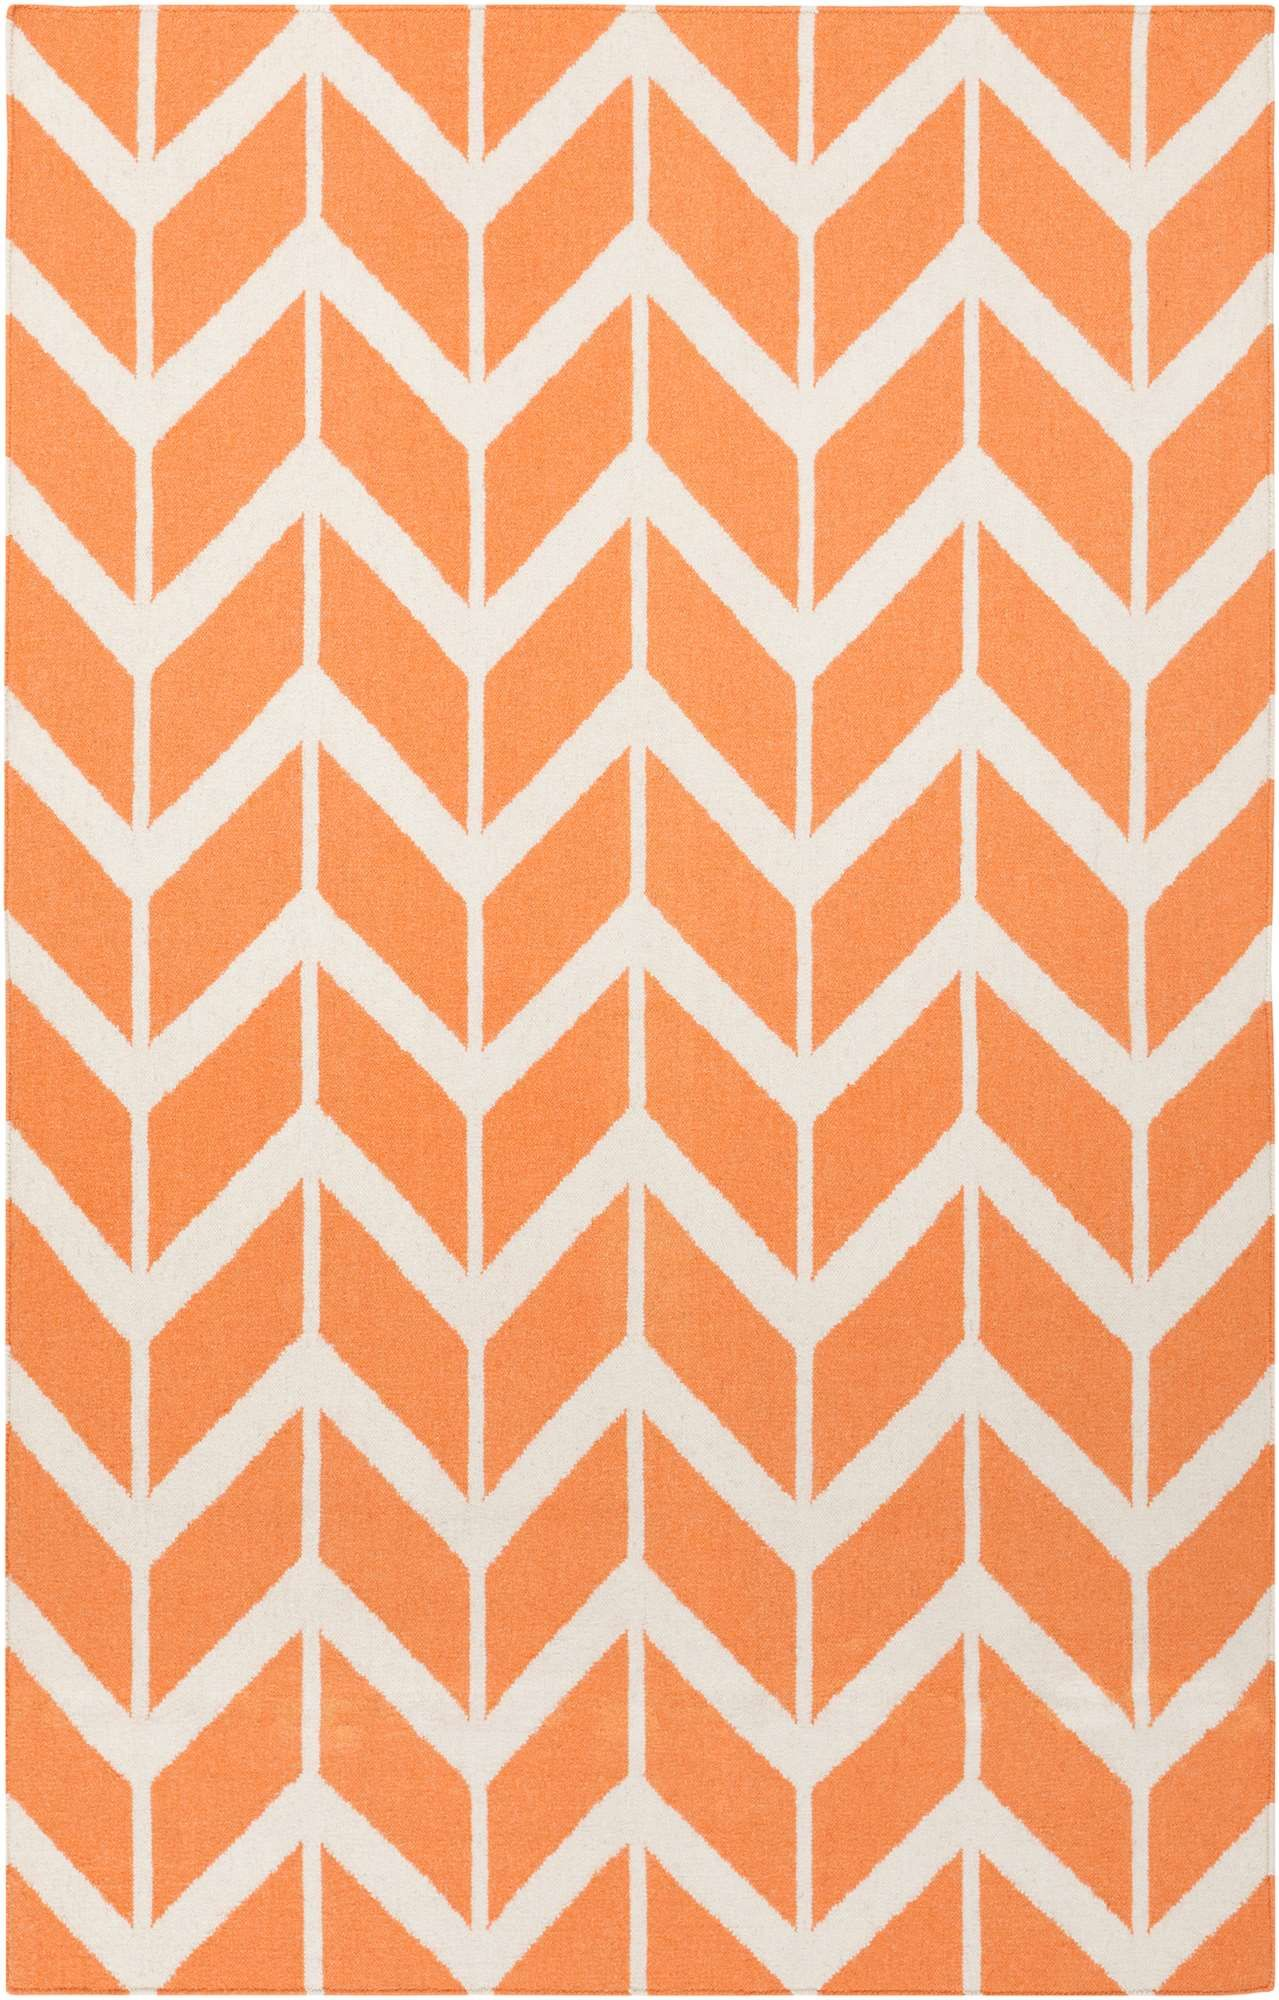 From Delicate Lattice Patterns To Boldly Colored Chevron Patterns The